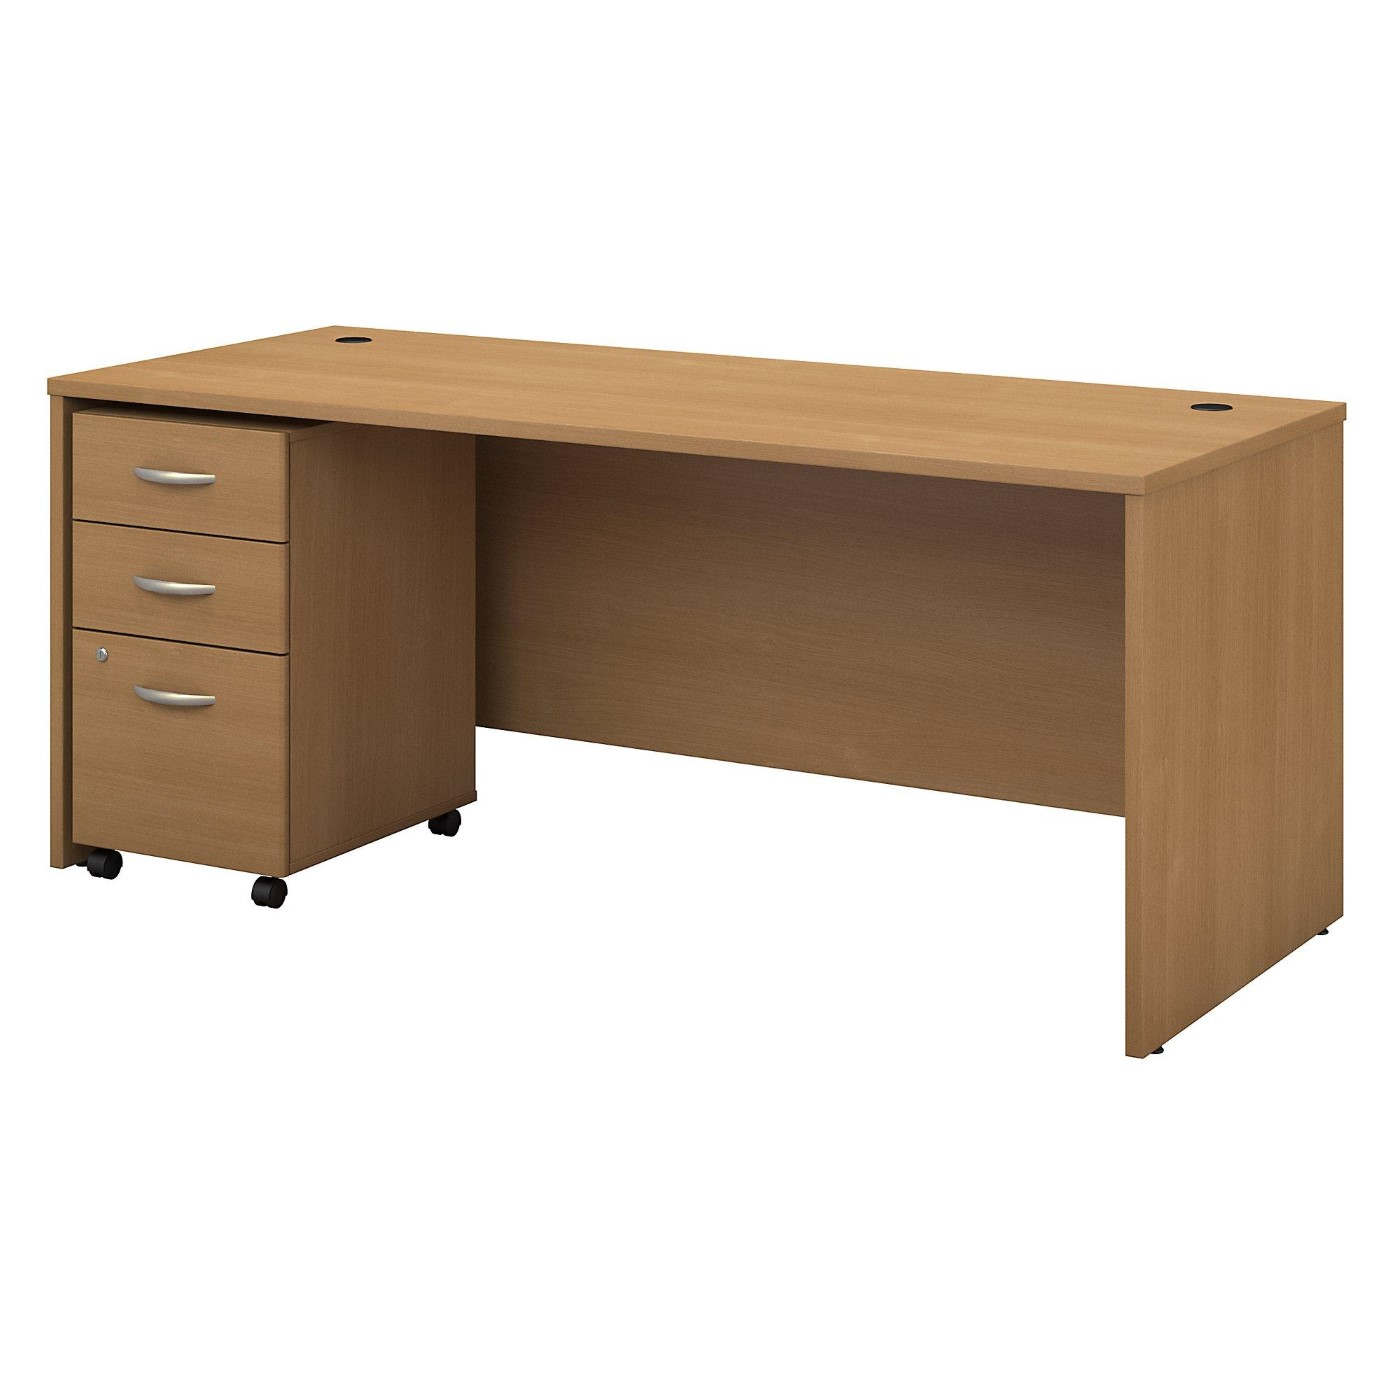 <font color=#c60><b>BUSH BUSINESS FURNITURE SERIES C 72W X 30D OFFICE DESK WITH MOBILE FILE CABINET. FREE SHIPPING</font></b></font></b>